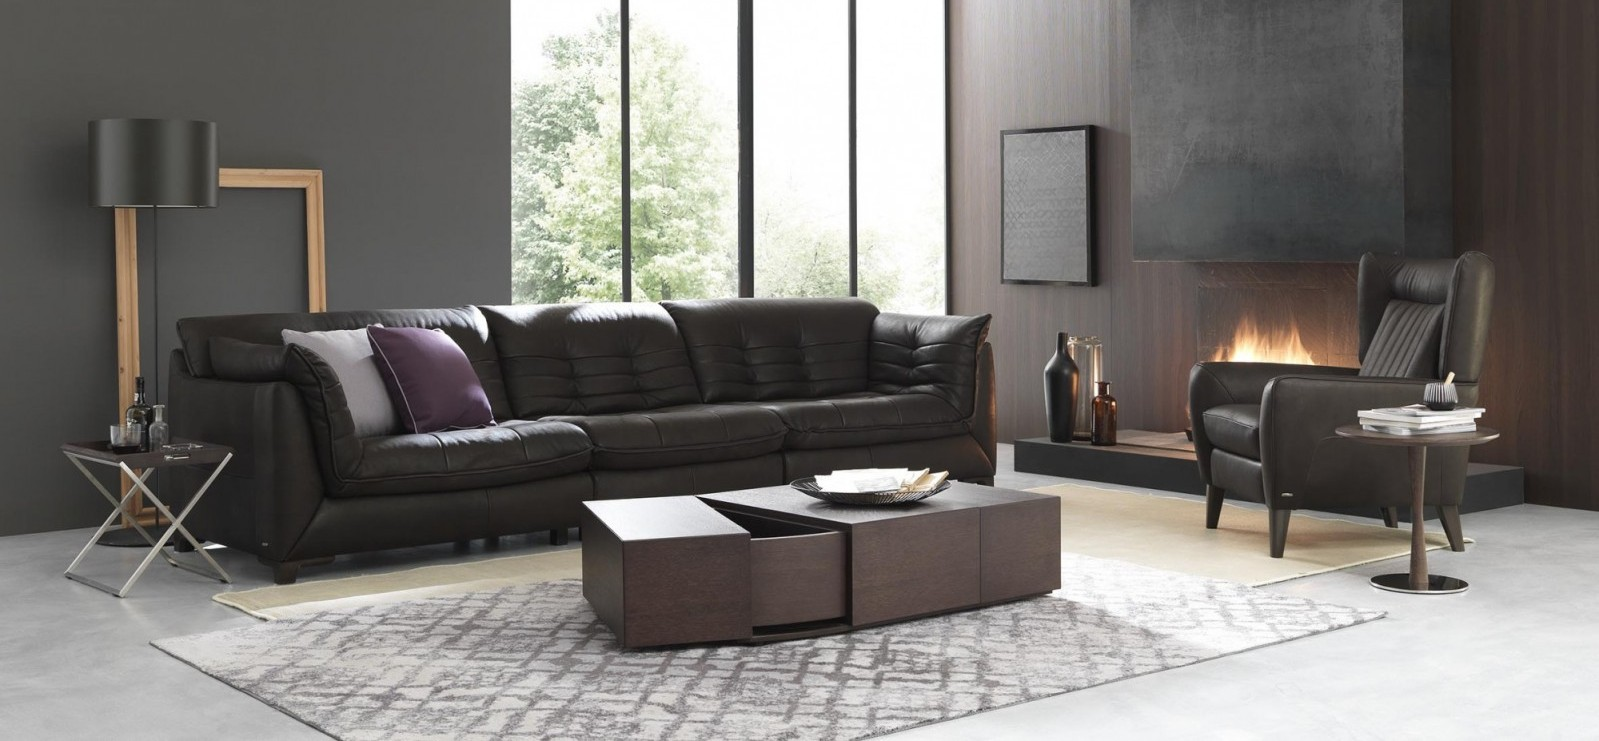 DIRECT FURNITURE SELECTION